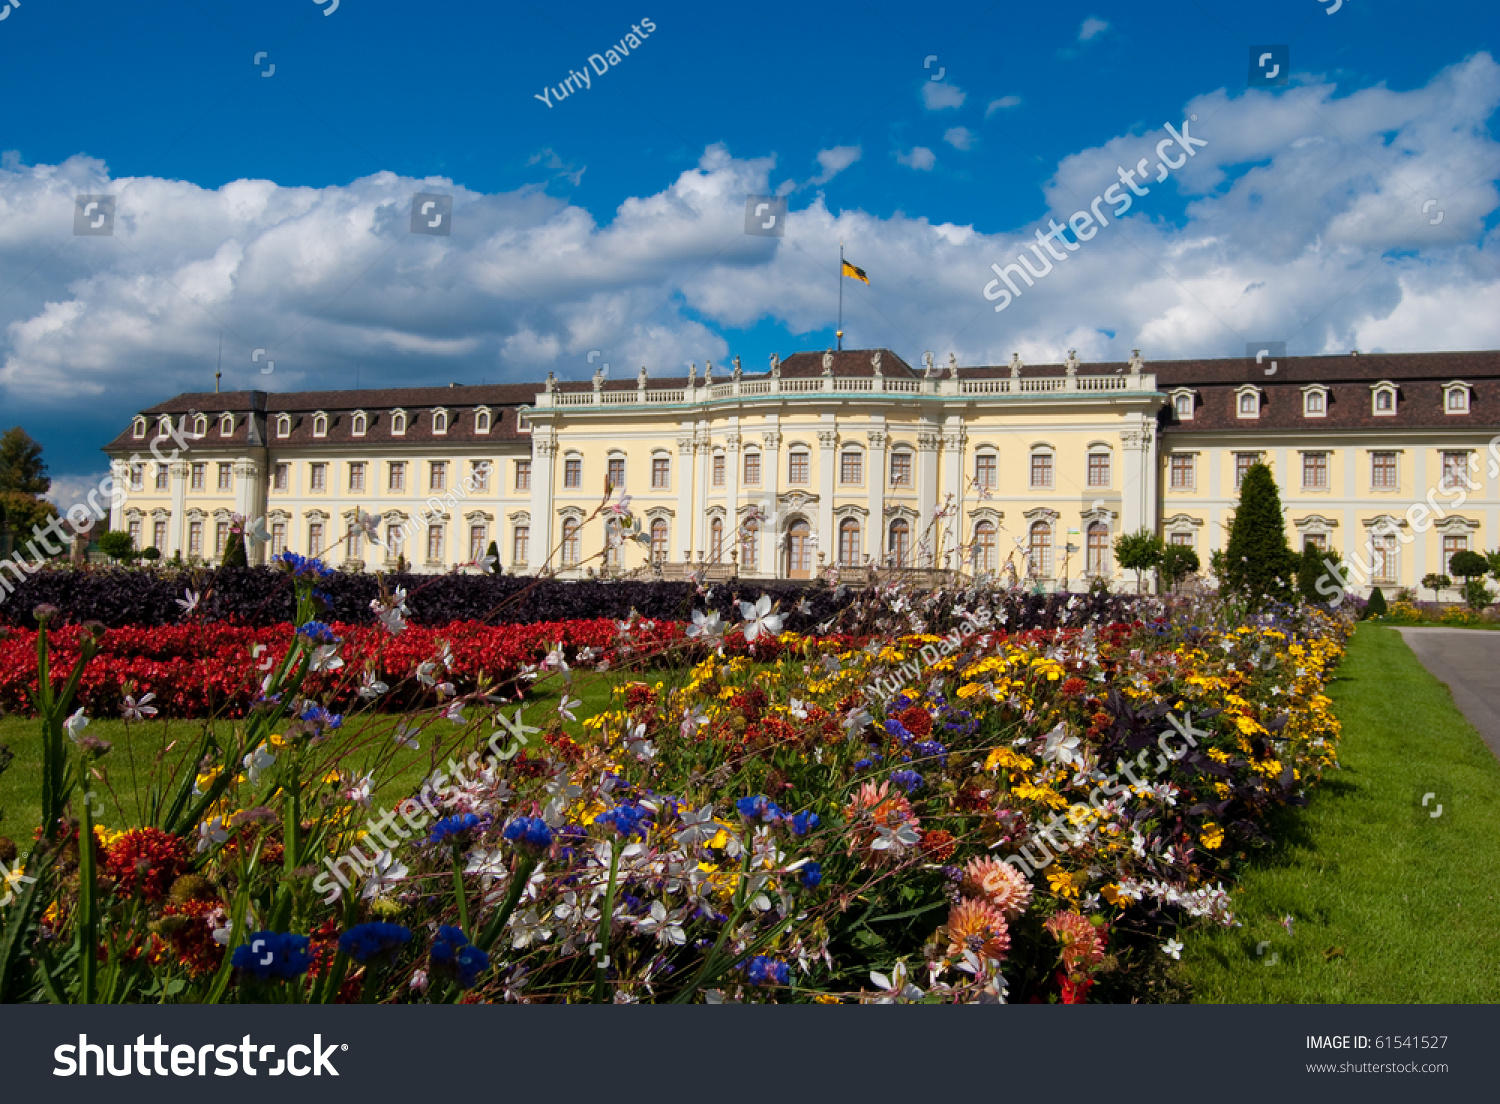 Stuttgart Ludwigsburg Flowers In Front Of The Royal Palace In Stuttgart